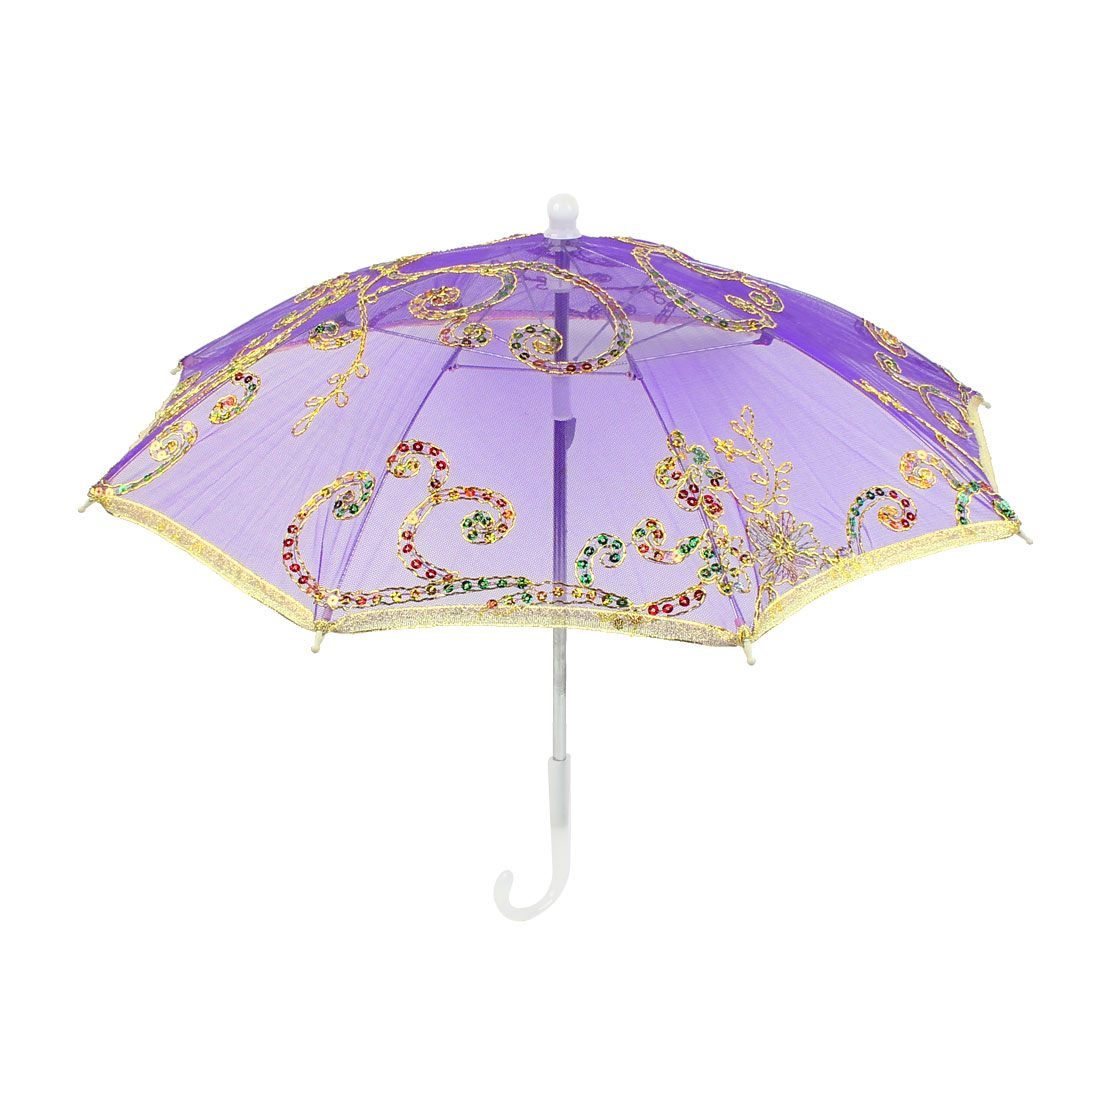 Embroidery Flower Pattern Foldable Dancing Parasol Umbrella Gold Tone Purple